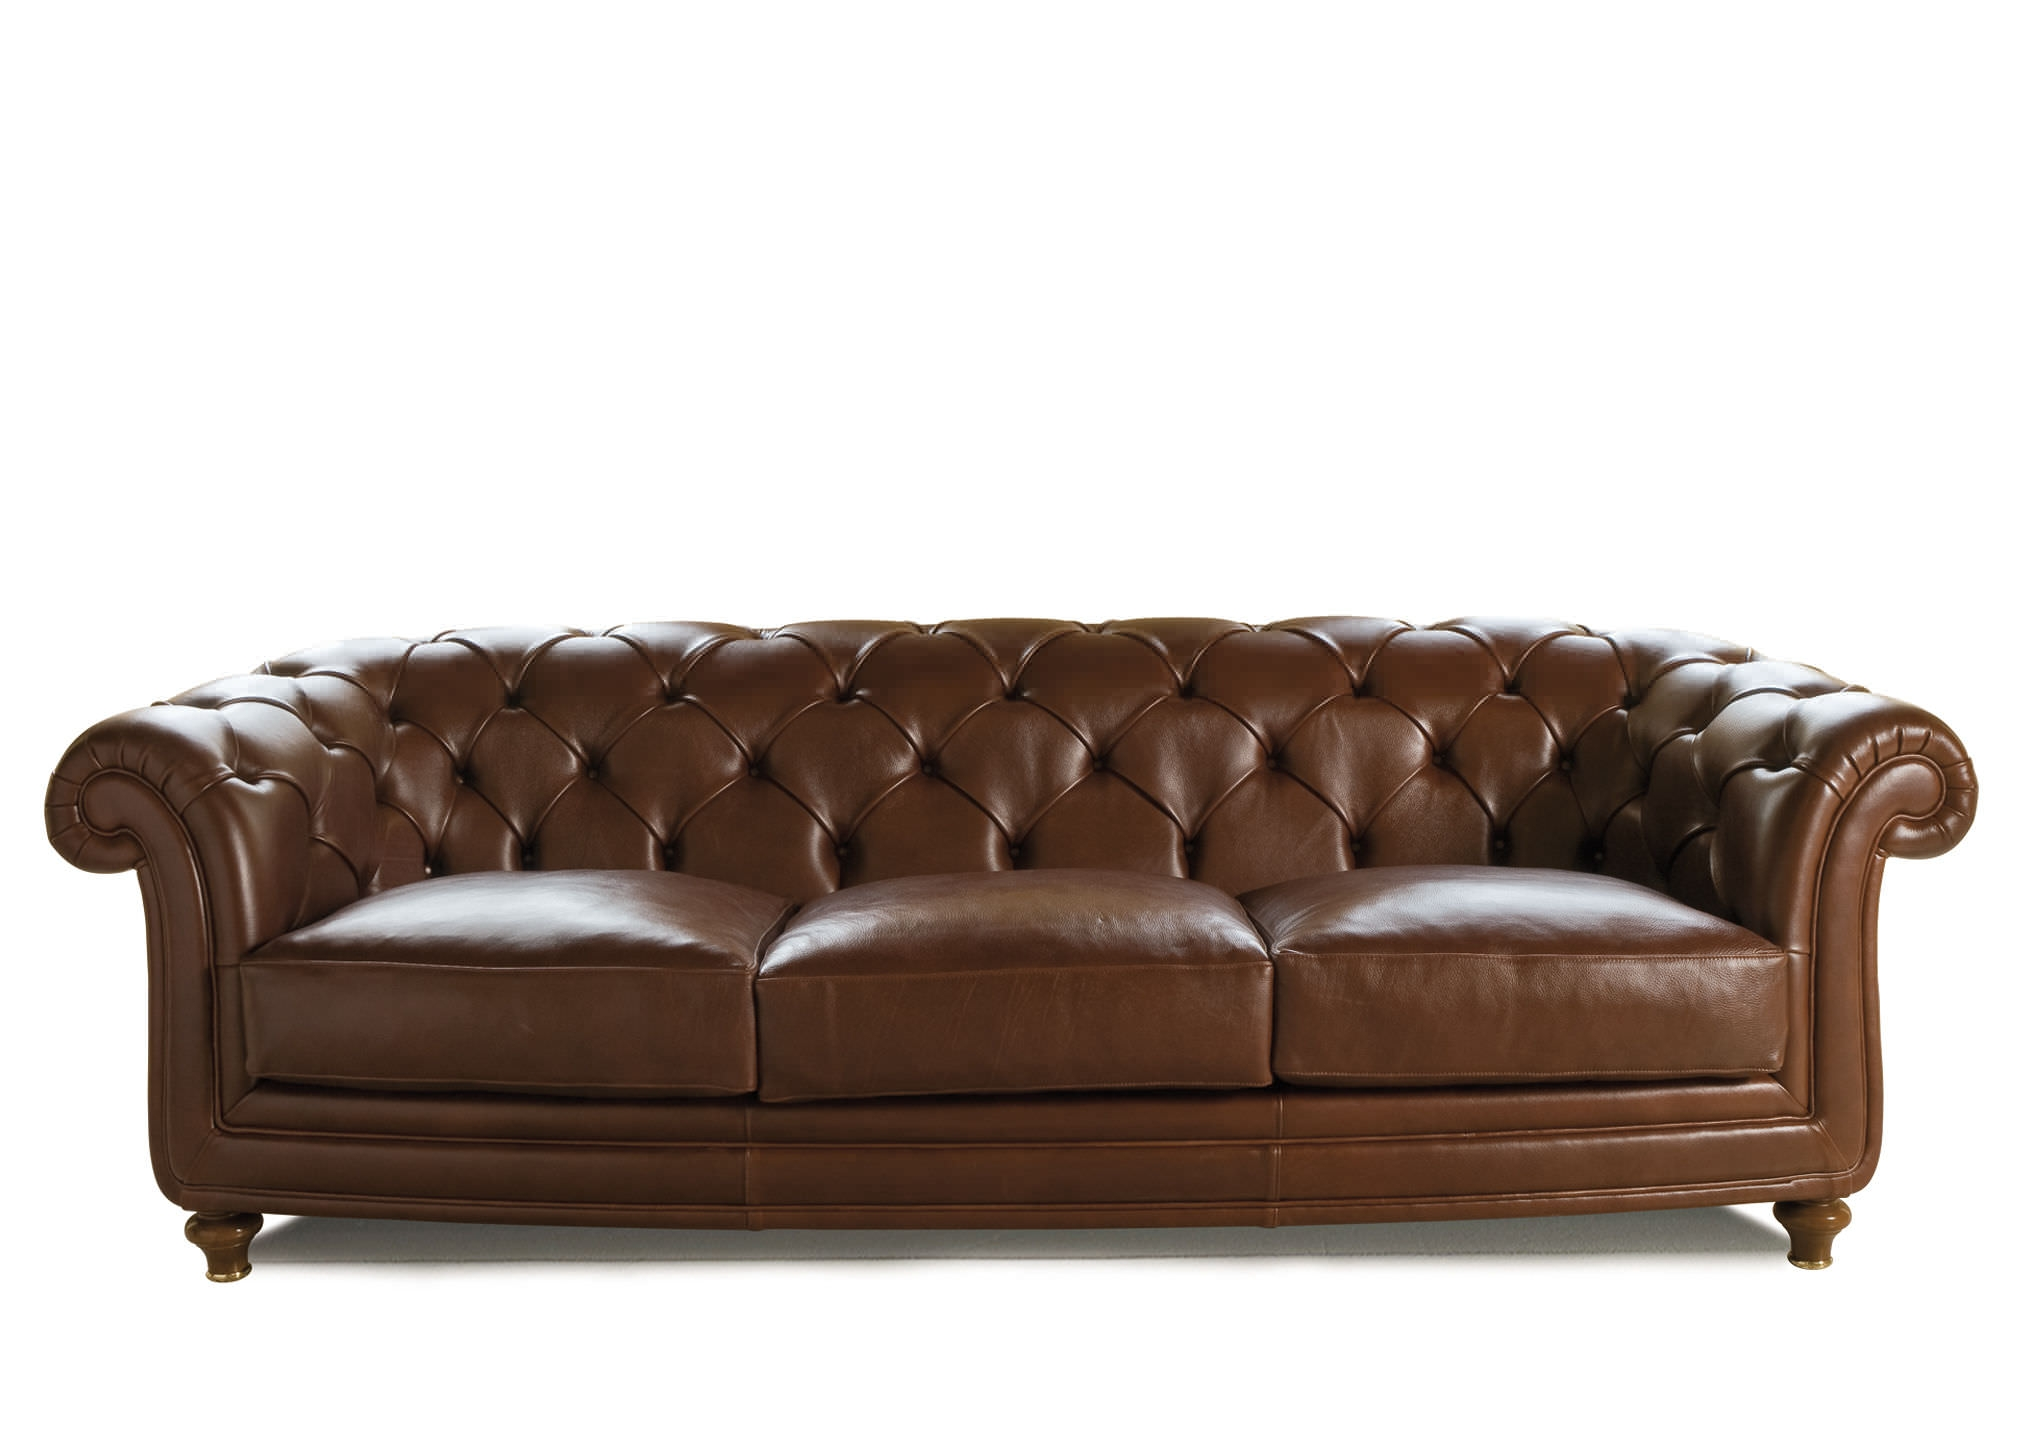 6 Seater Corner Sofa Chesterfield 15 Best Oxford Sofas Sofa Ideas